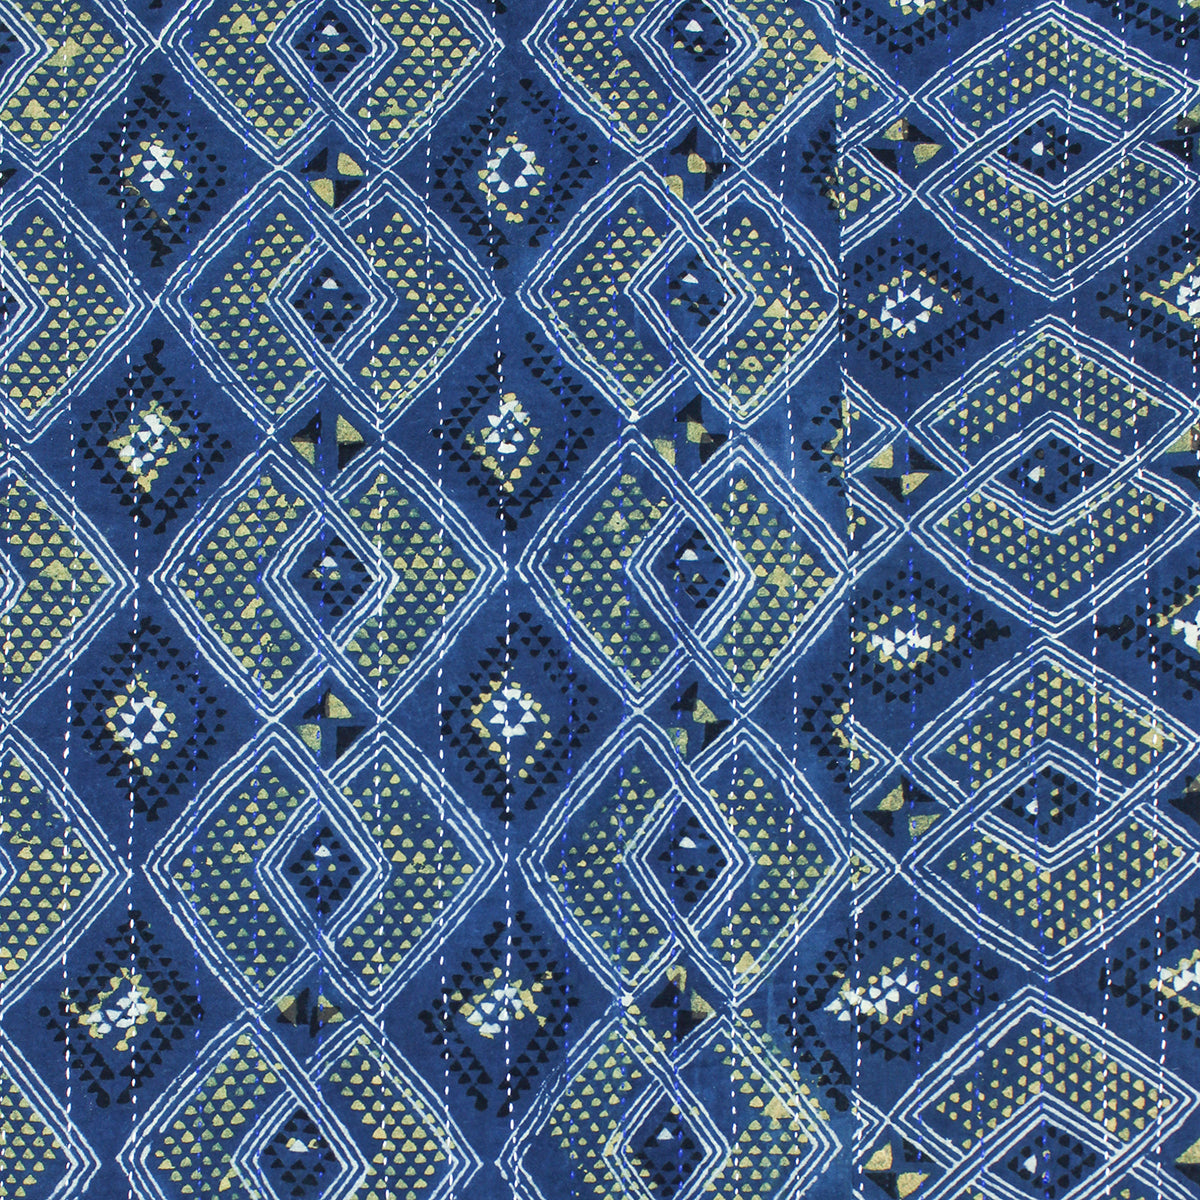 Detail of reverse stitching on indigo dyed woven quilt showing diamond shapes overlapping with intricate detailing in each